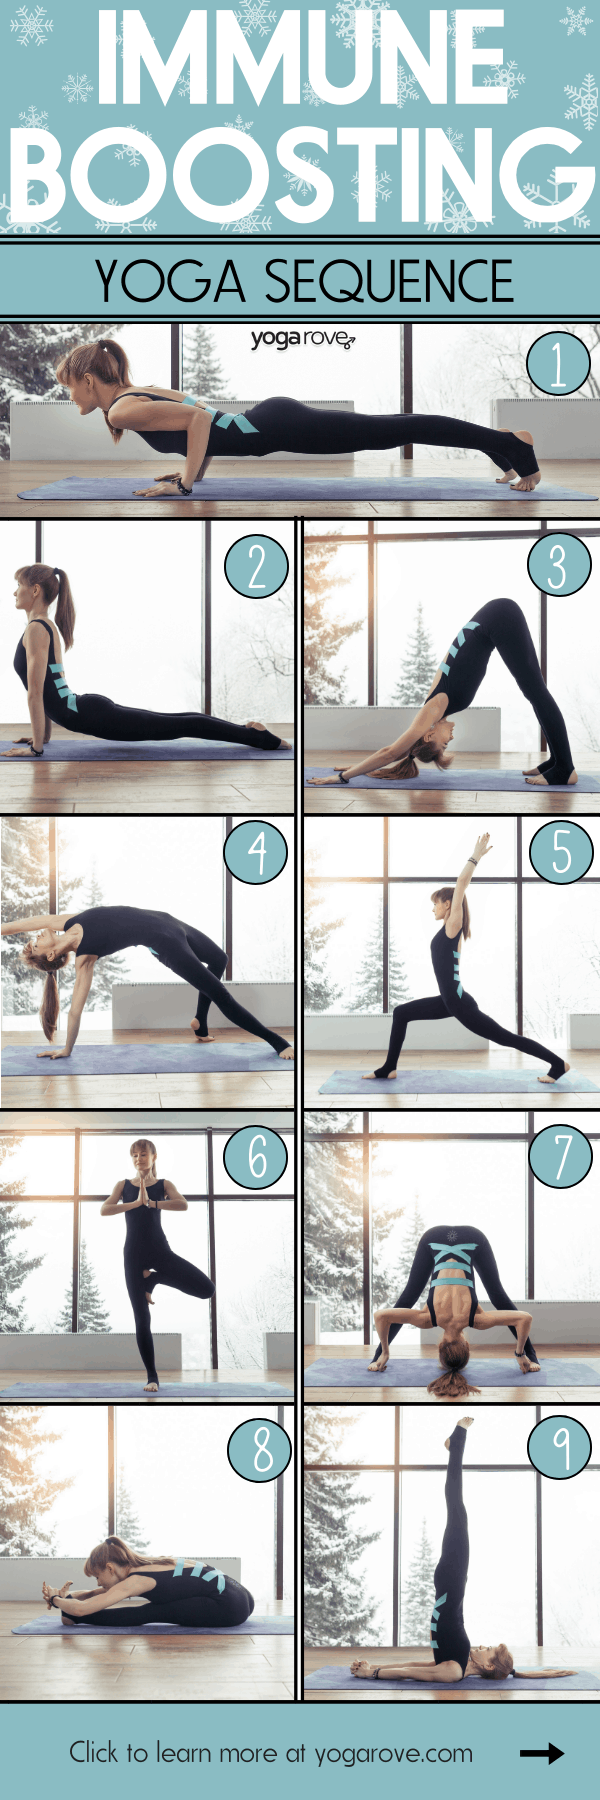 Immune Boosting Yoga Sequence Infographic